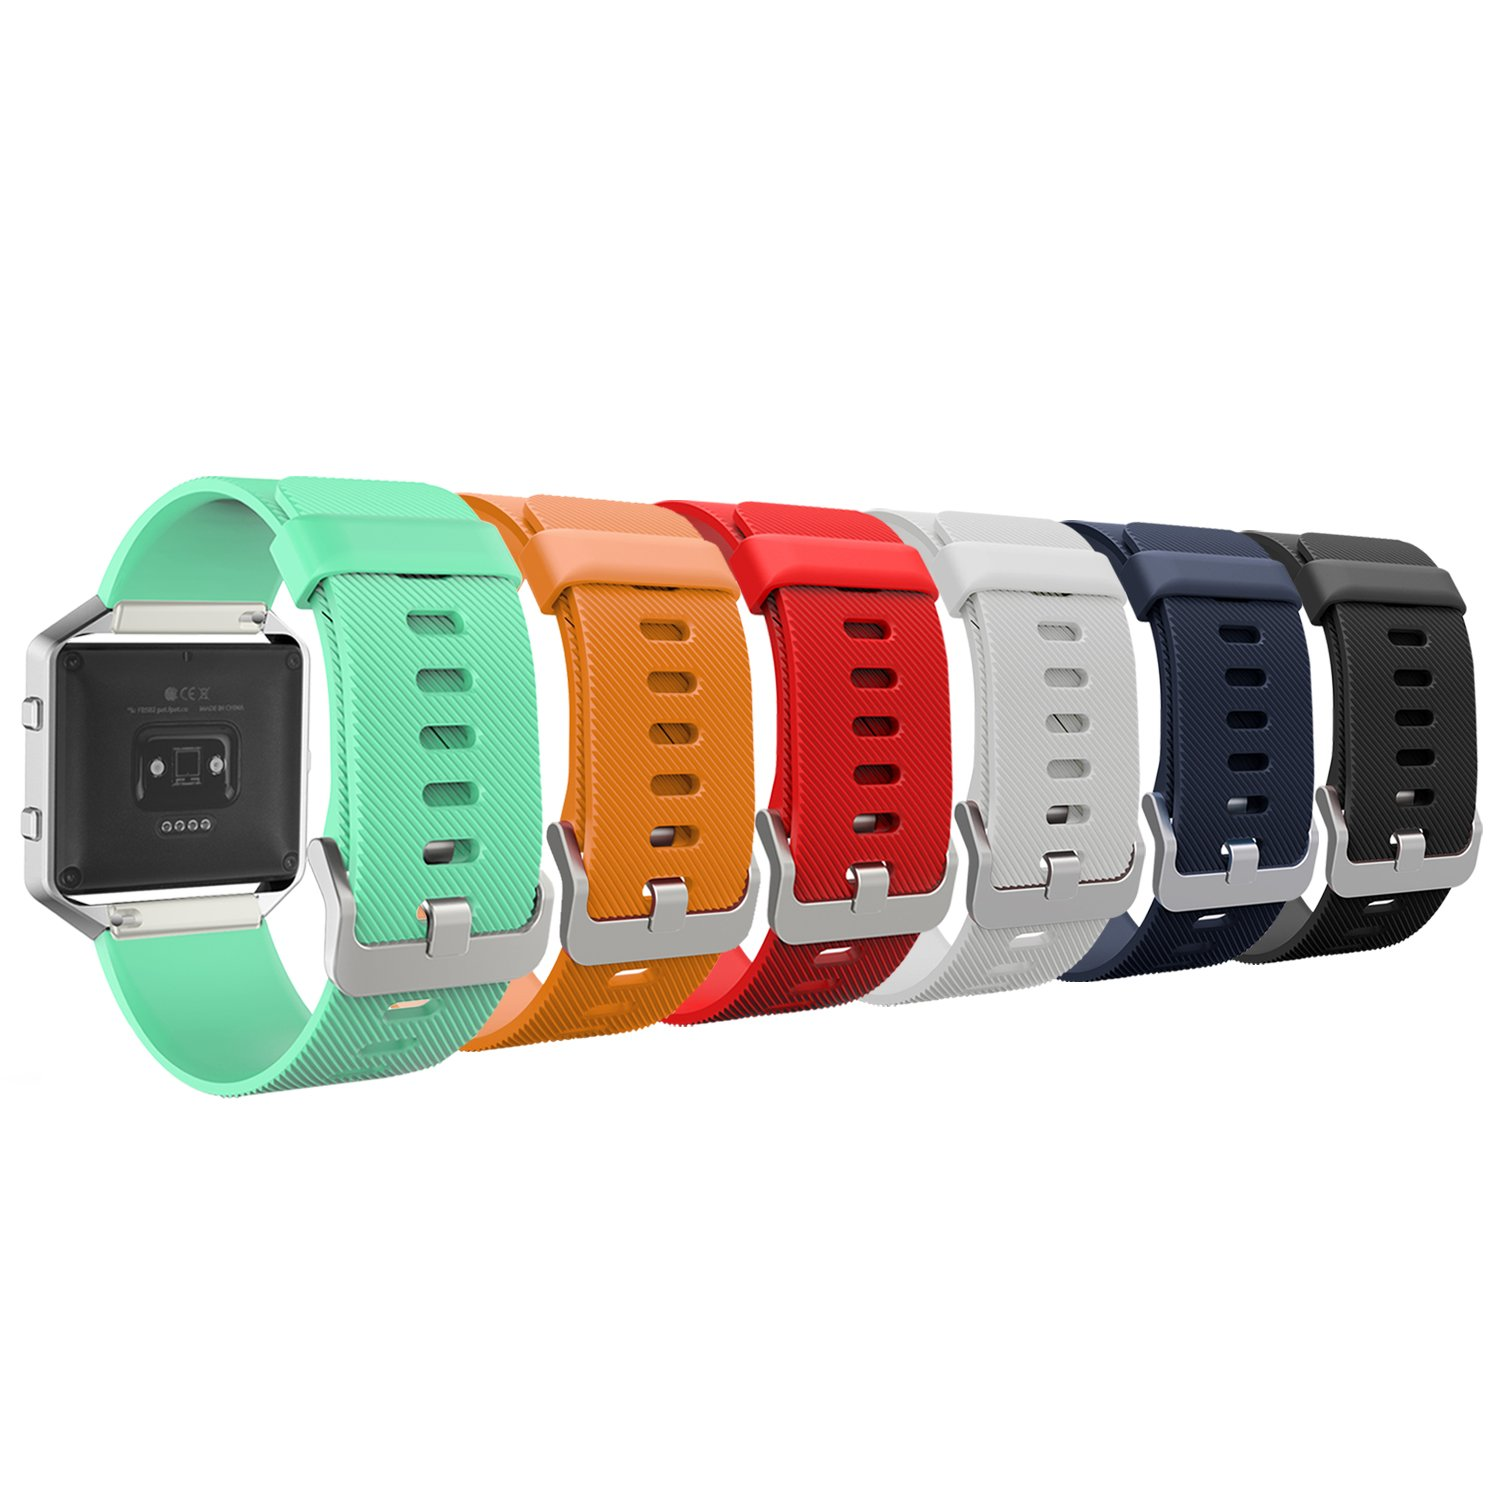 MoKo Fitbit Blaze Band, [6 PACK] Colorful Soft Silicone Adjustable Replacement Band Straps for Fitbit Blaze Smart Fitness Watch, Wrist Length 5.90''-8.26'', 6PCS (Multi-Colors)